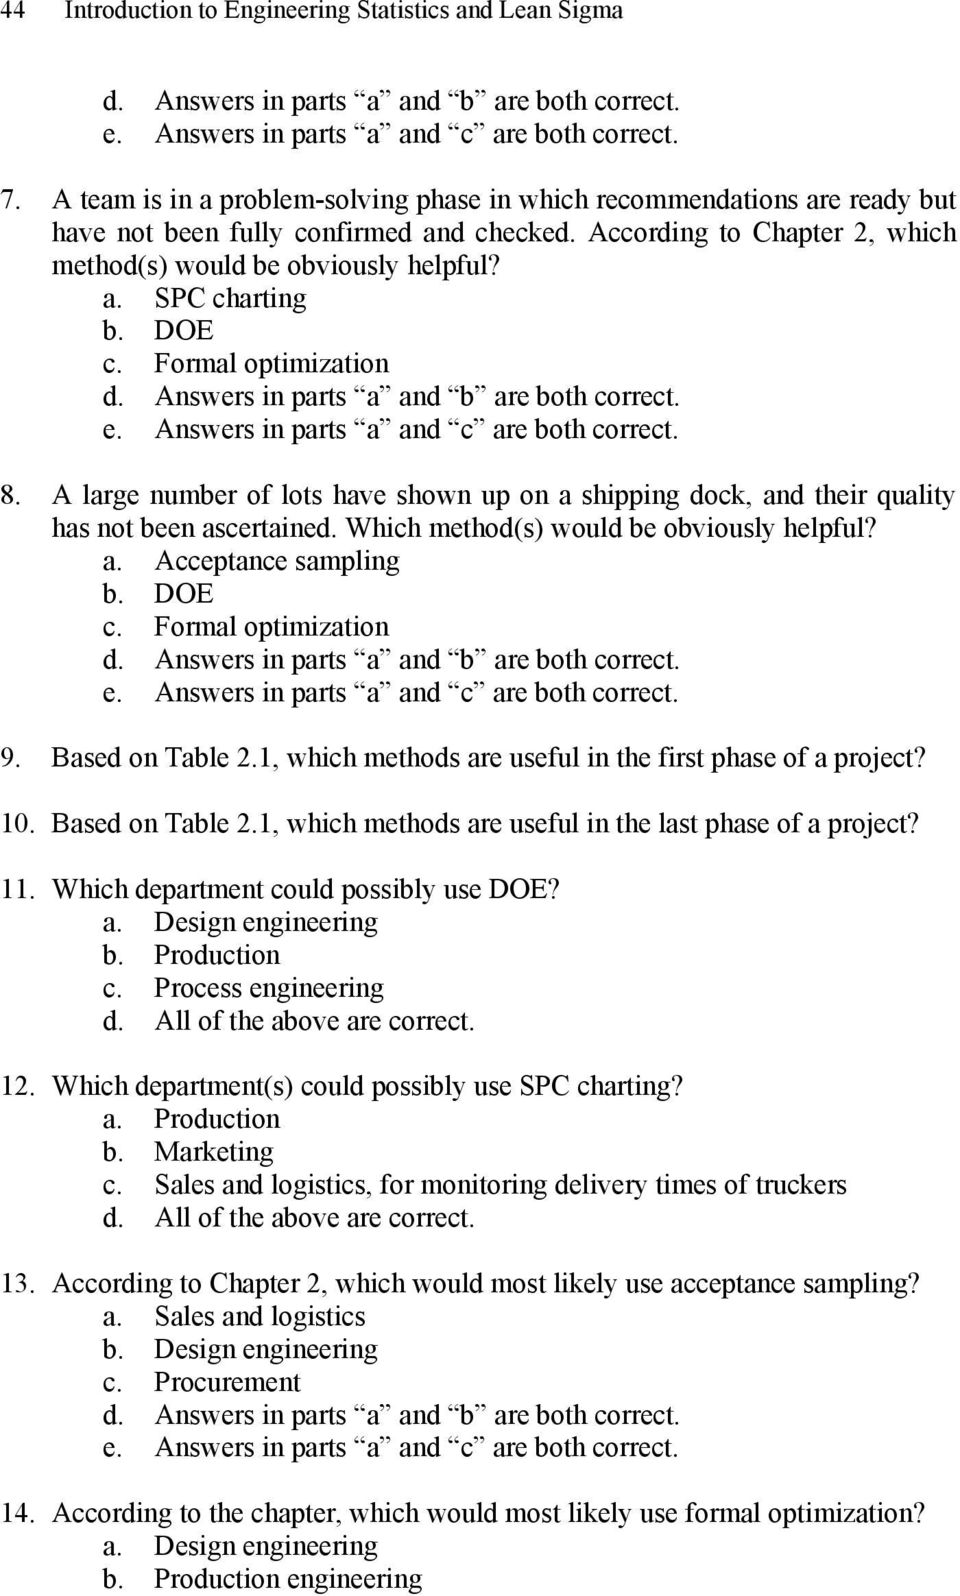 A large number of lots have shown up on a shipping dock, and their quality has not been ascertained. Which method(s) would be obviously helpful? a. Acceptance sampling b. DOE c. Formal optimization 9.